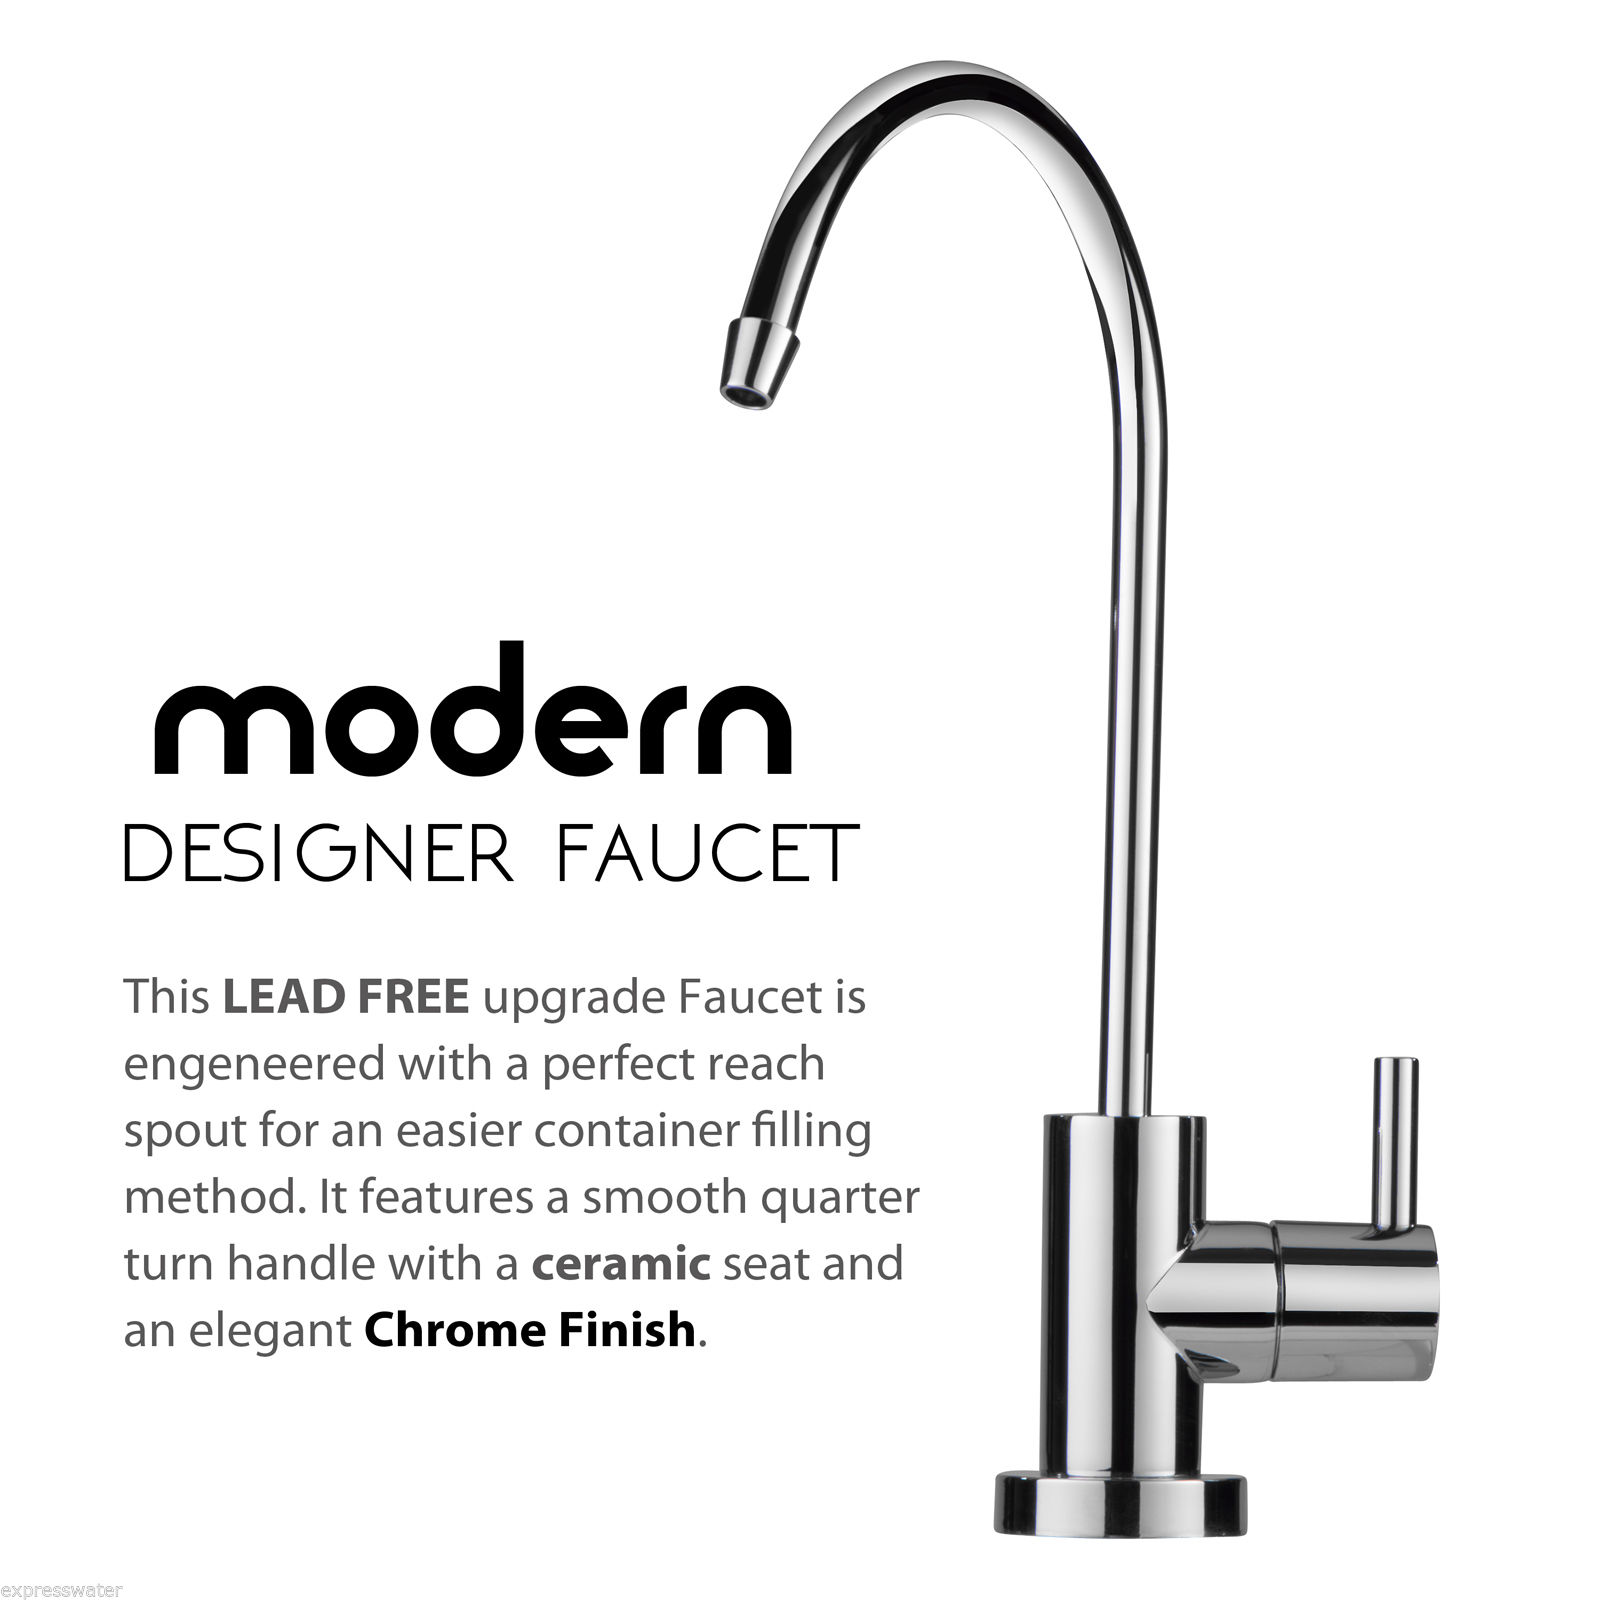 style water brushed reverse nickel htm purifier p european product osmosis filter faucets qneb faucet